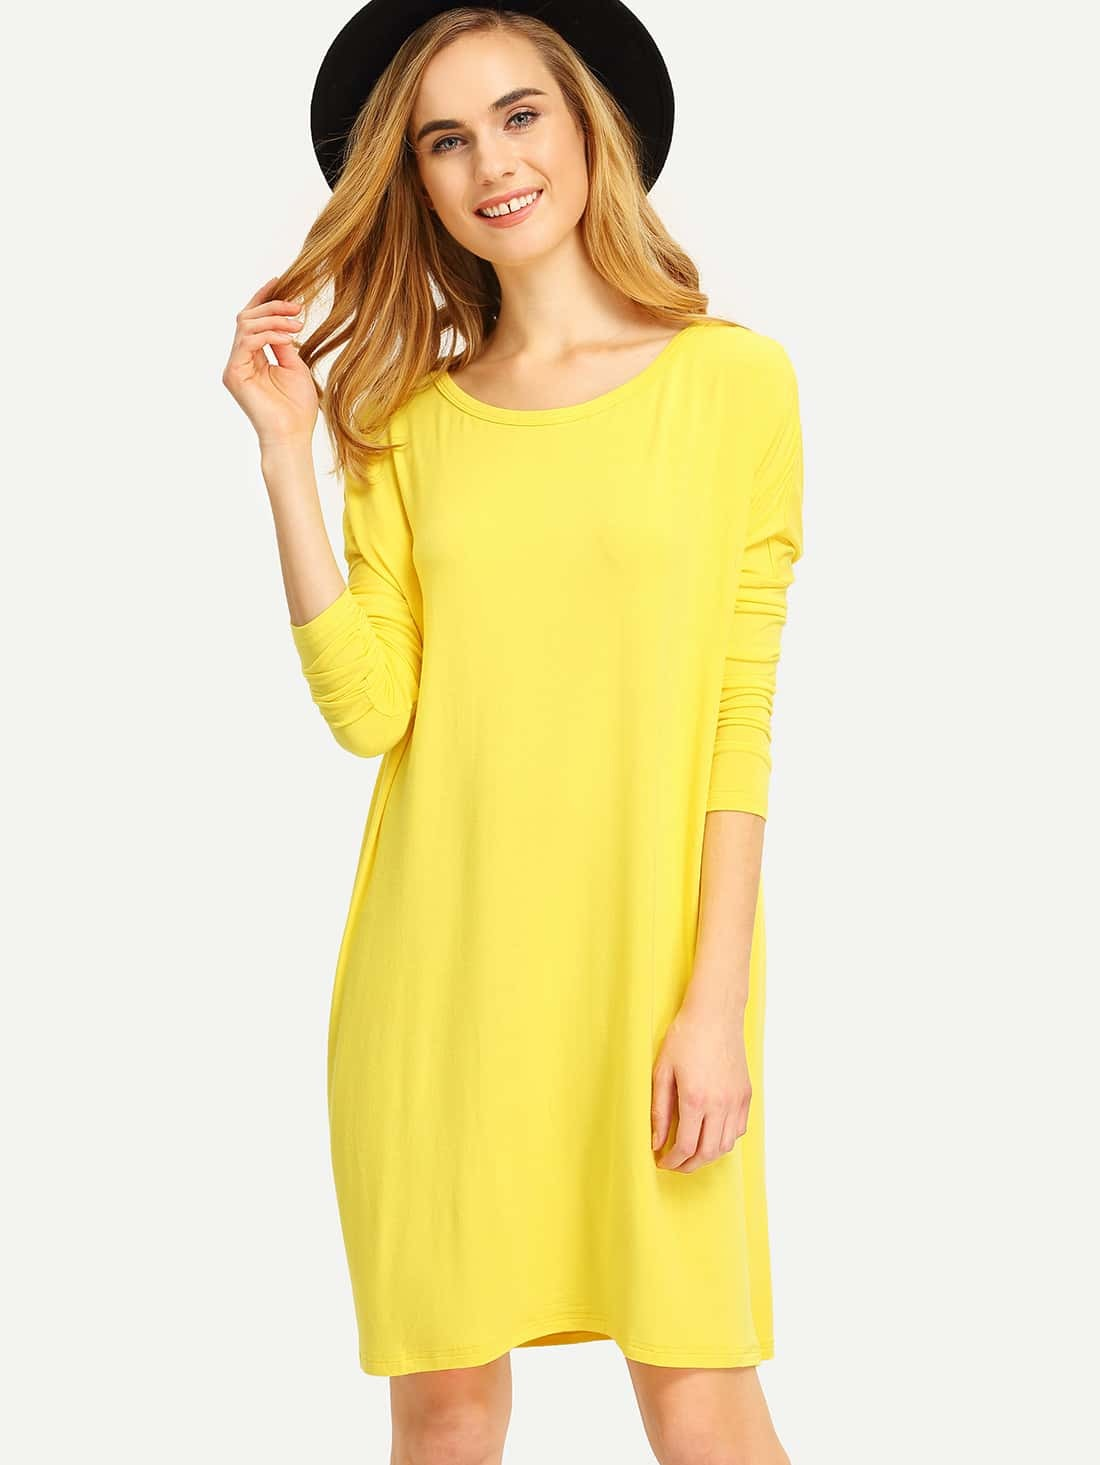 Mini. Mini casual dresses for women offer a fun choice for day or night. Choose a mini with long sleeves to create visual interest, or pick a sleeveless style that you can pair with pretty heels for an afternoon of .